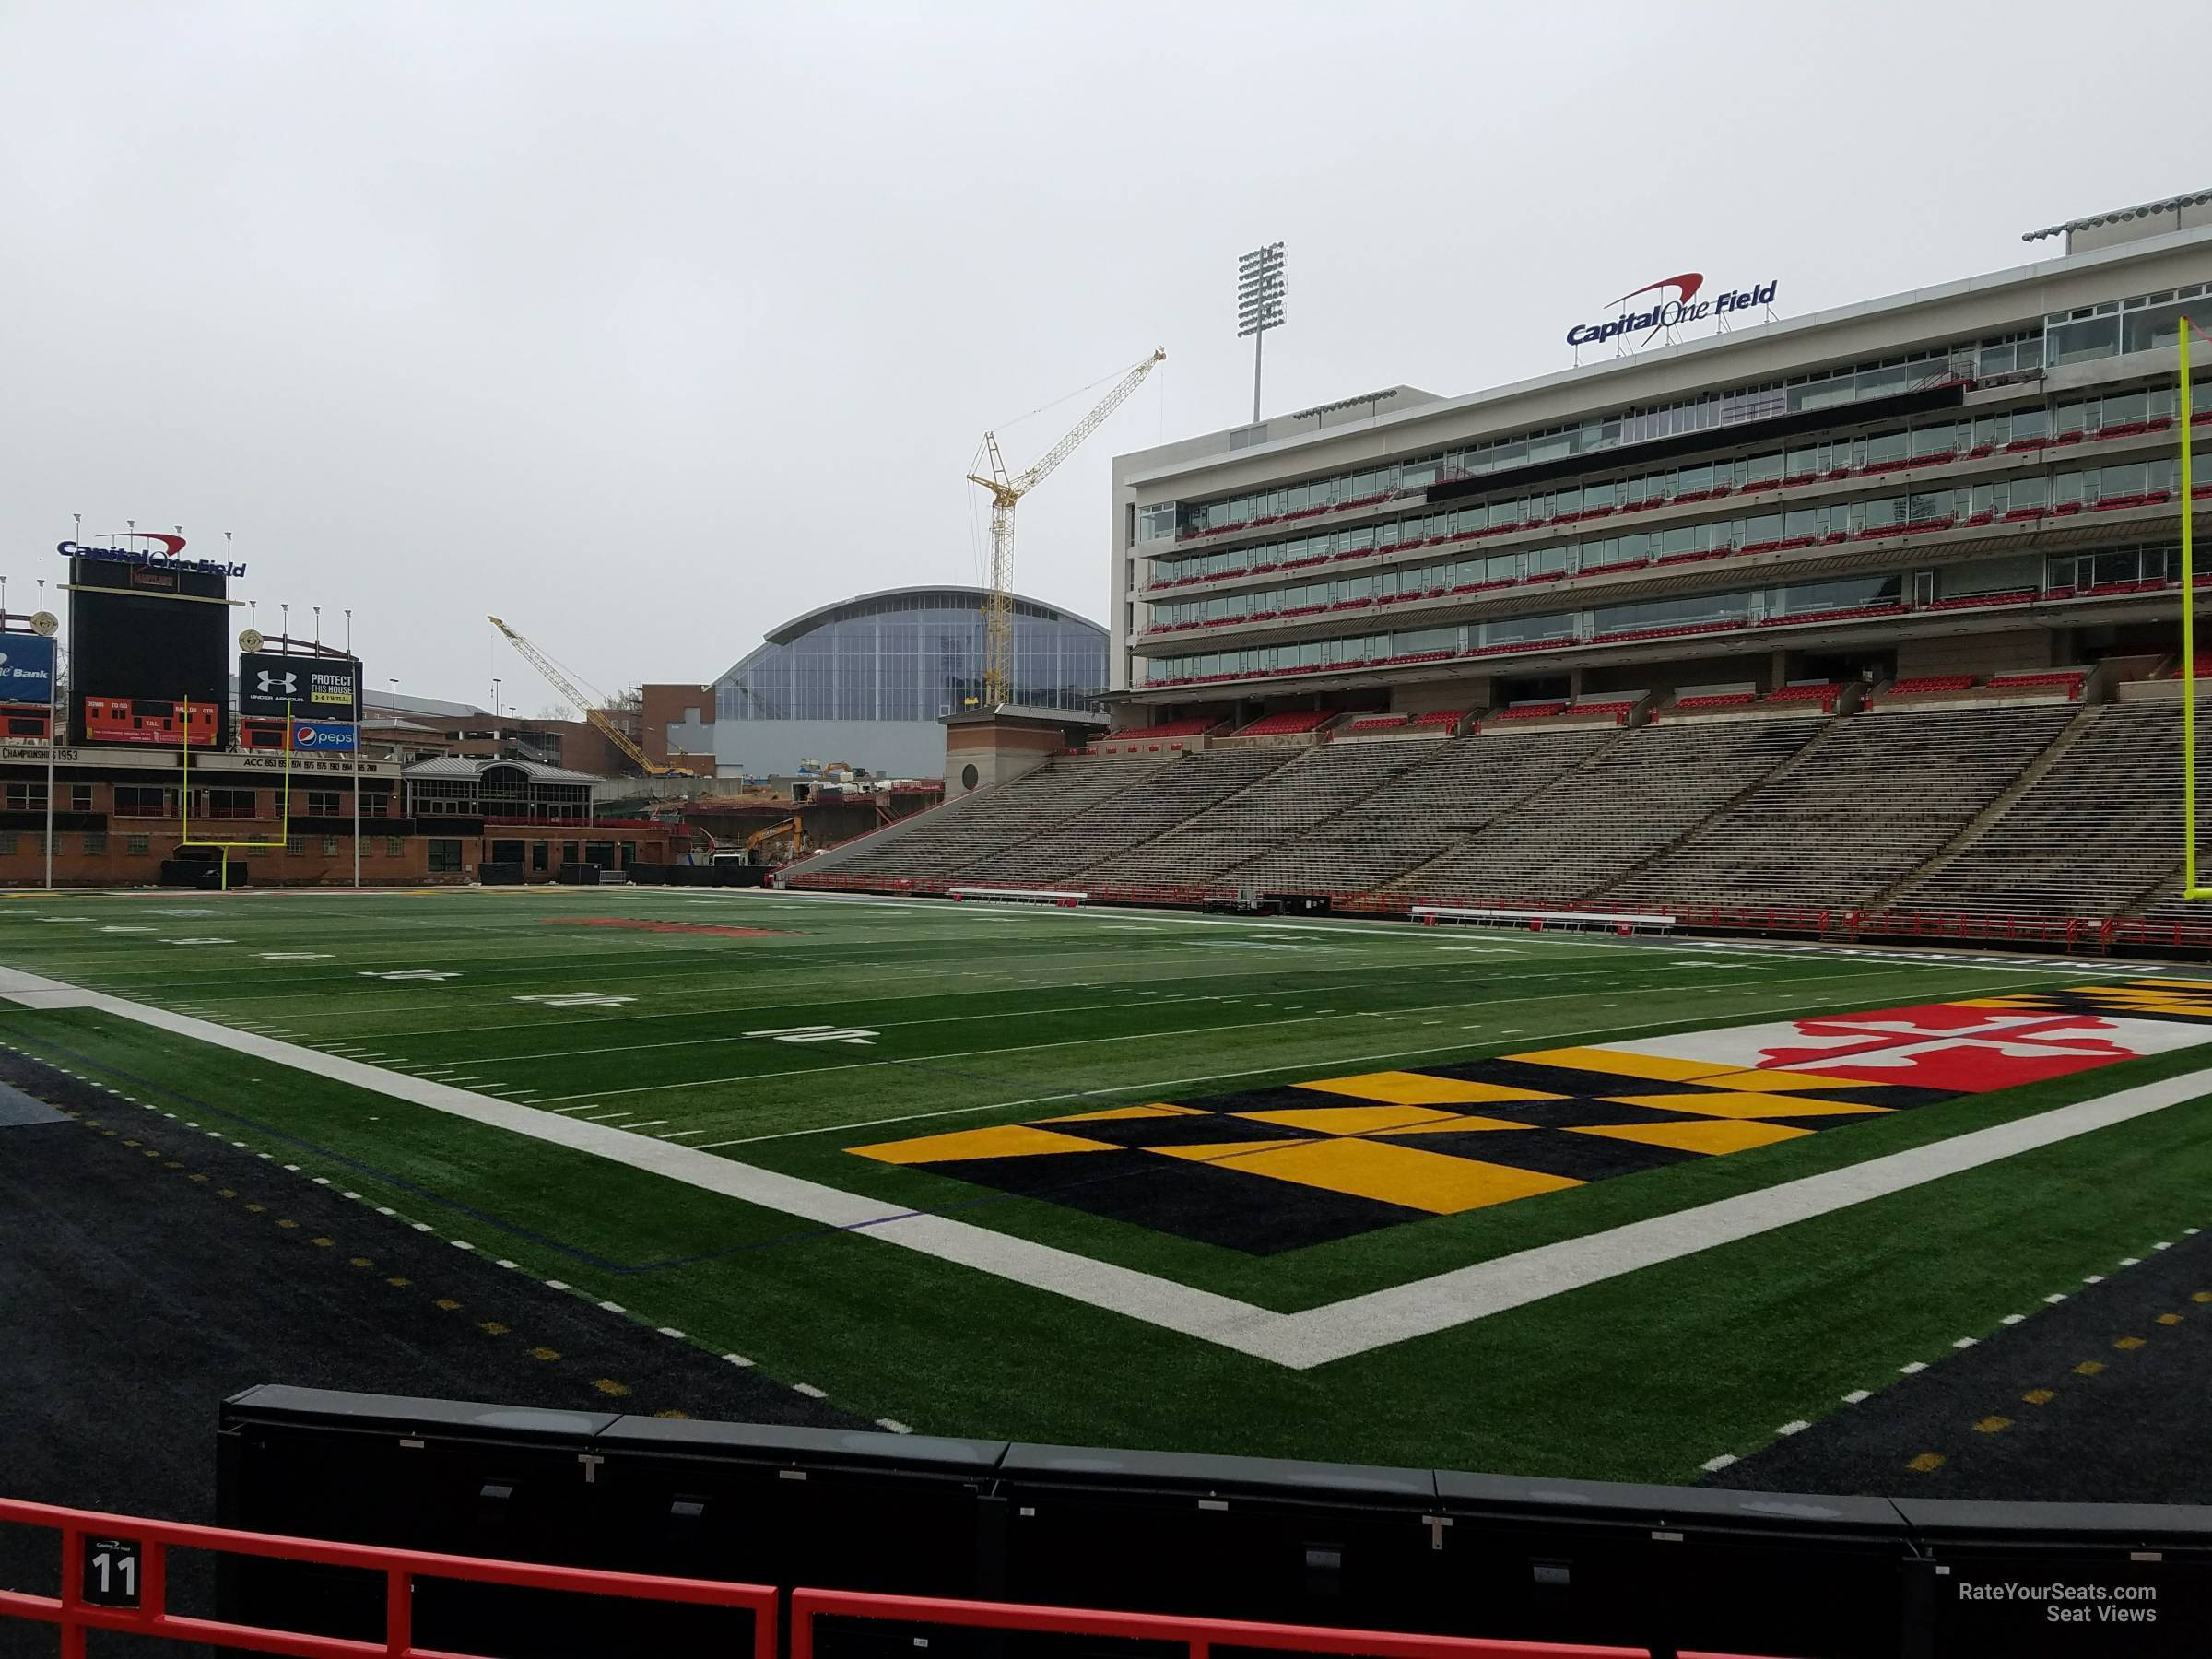 Seat View for Maryland Stadium Section 11, Row G